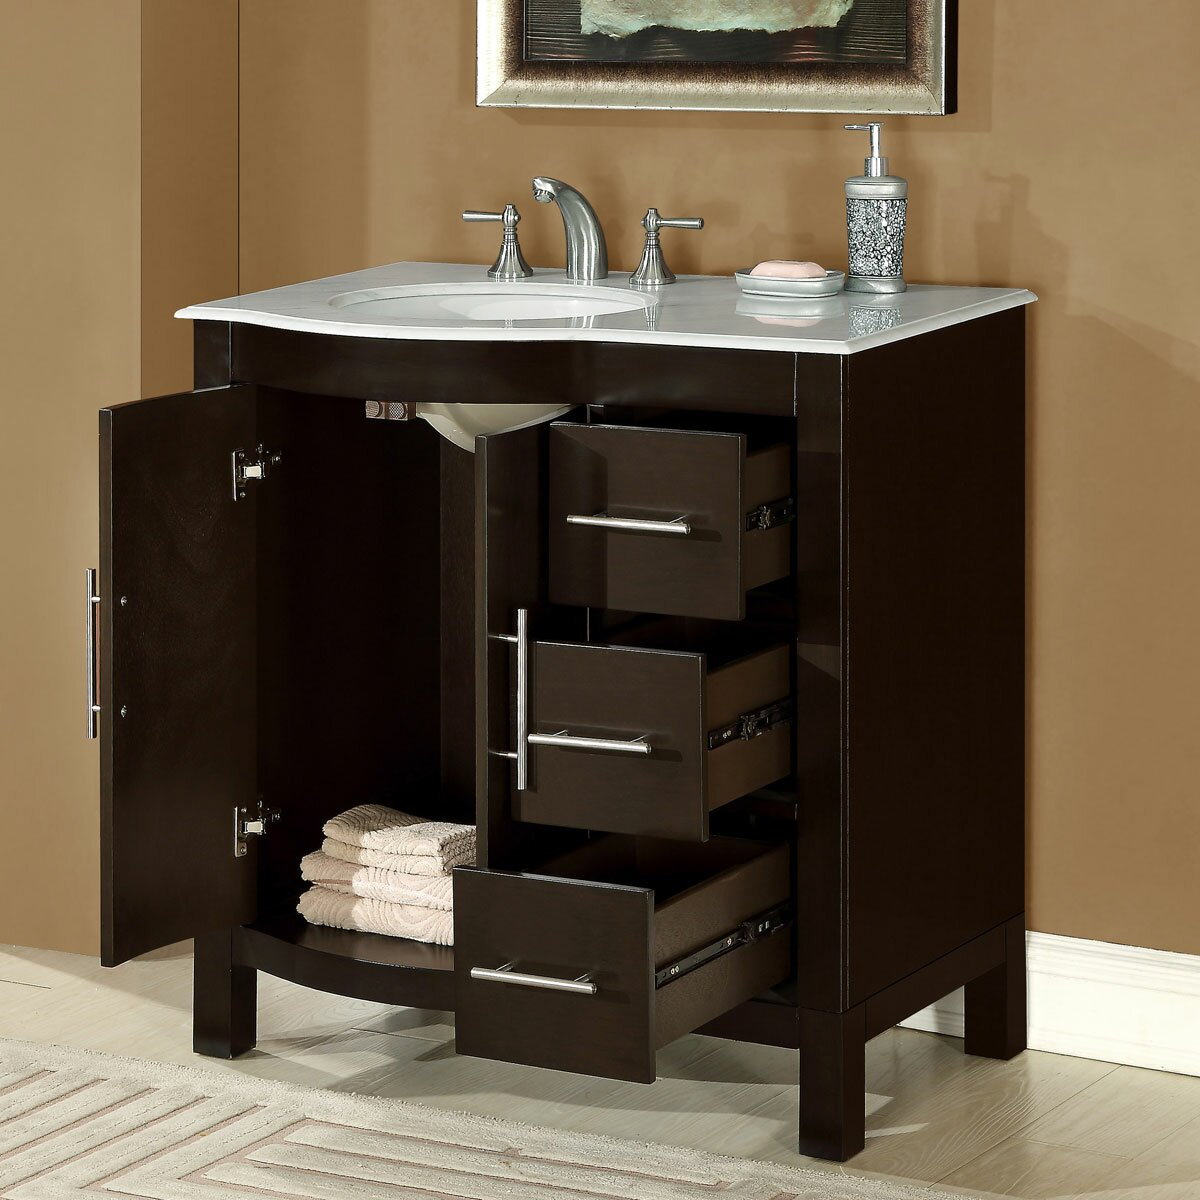 Silkroad Exclusive Kimberly 36 Single Bathroom Vanity Set Reviews